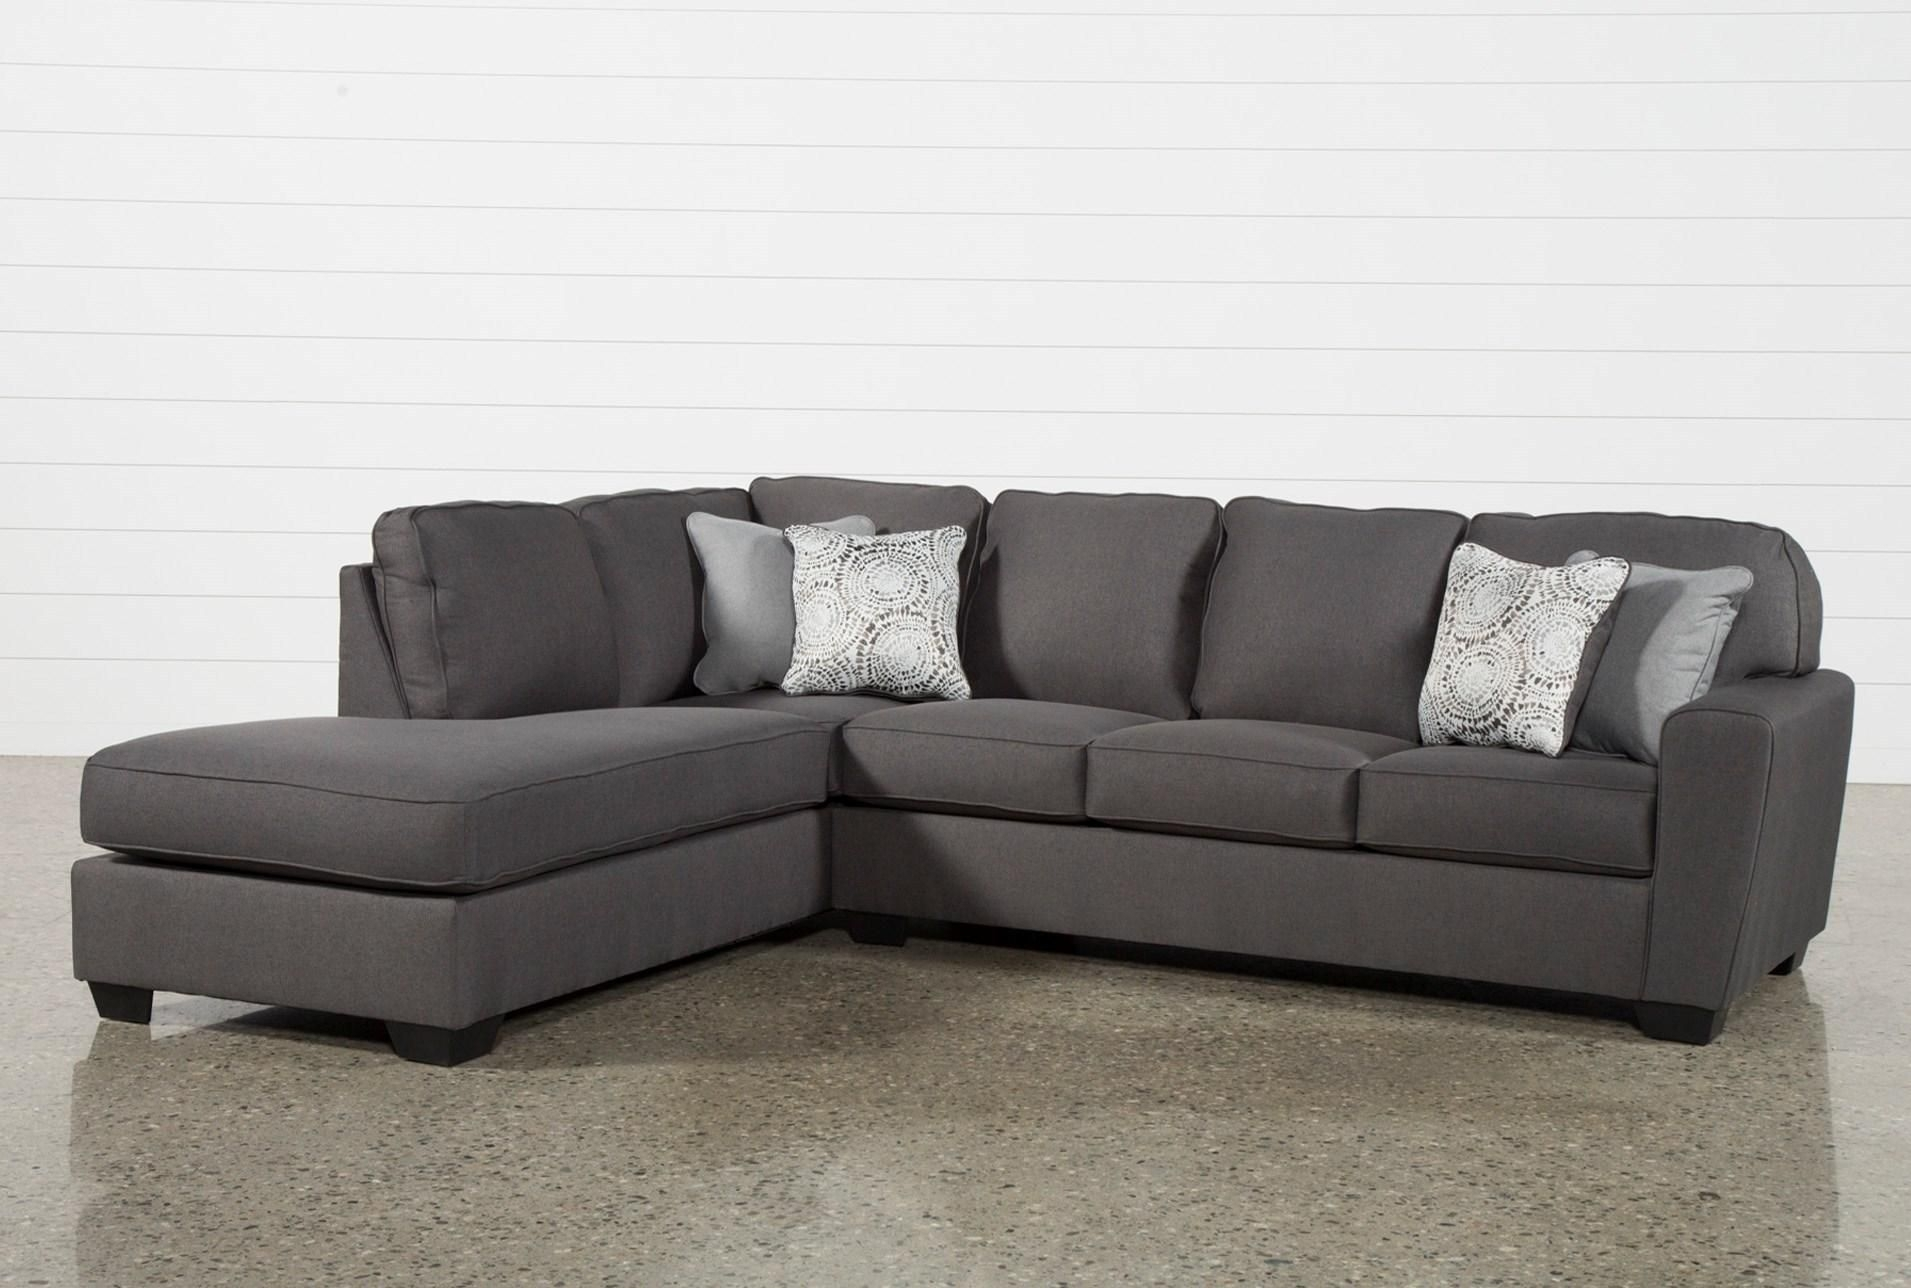 Mcdade Graphite 2 Piece Sectional W/laf Chaise | Graphite, Living With Josephine 2 Piece Sectionals With Raf Sofa (View 4 of 25)